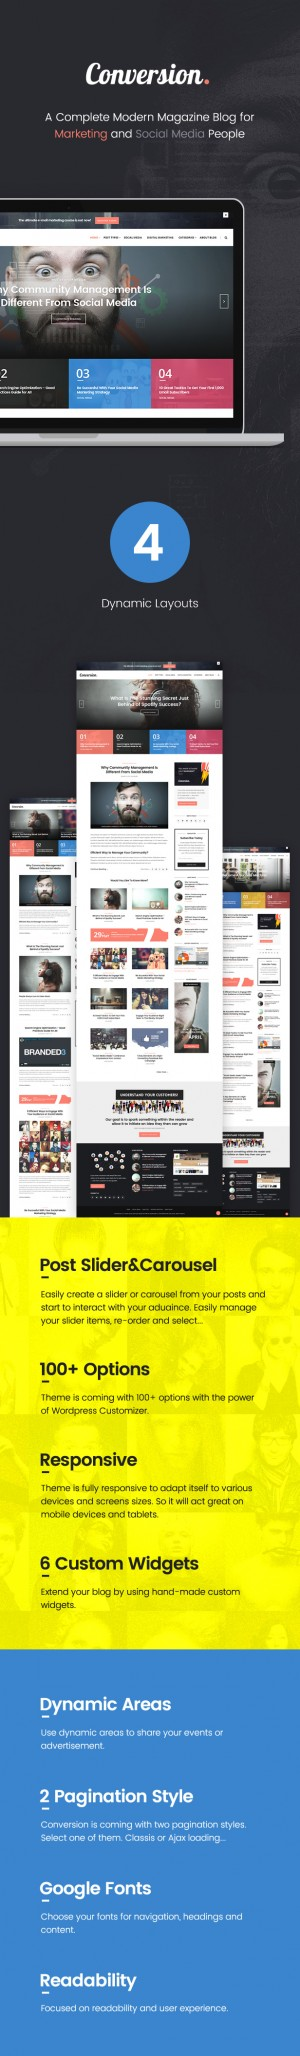 Ultimate Conversion – Digital Marketing Magazine